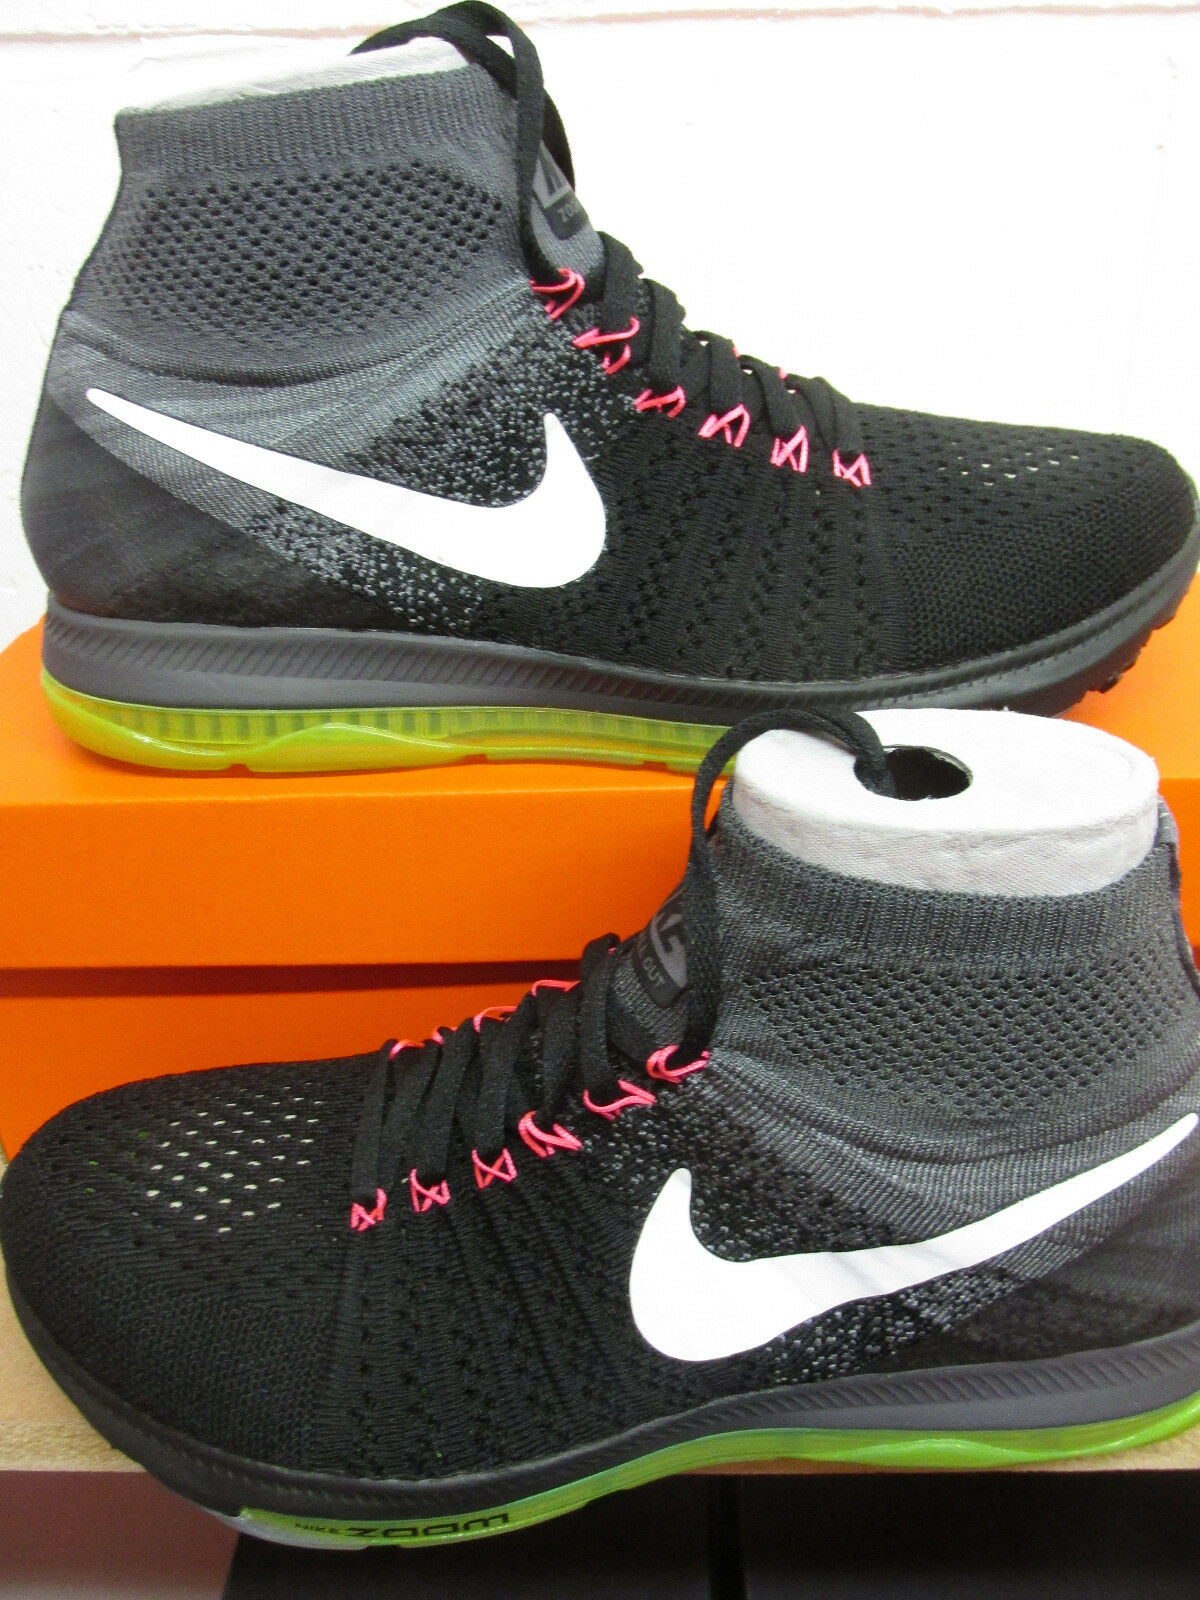 hot sale online 3d968 92061 Nike Zoom All Out Flyknit homme fonctionnement Trainers Trainers Trainers  844134 002 Baskets chaussures 0db126